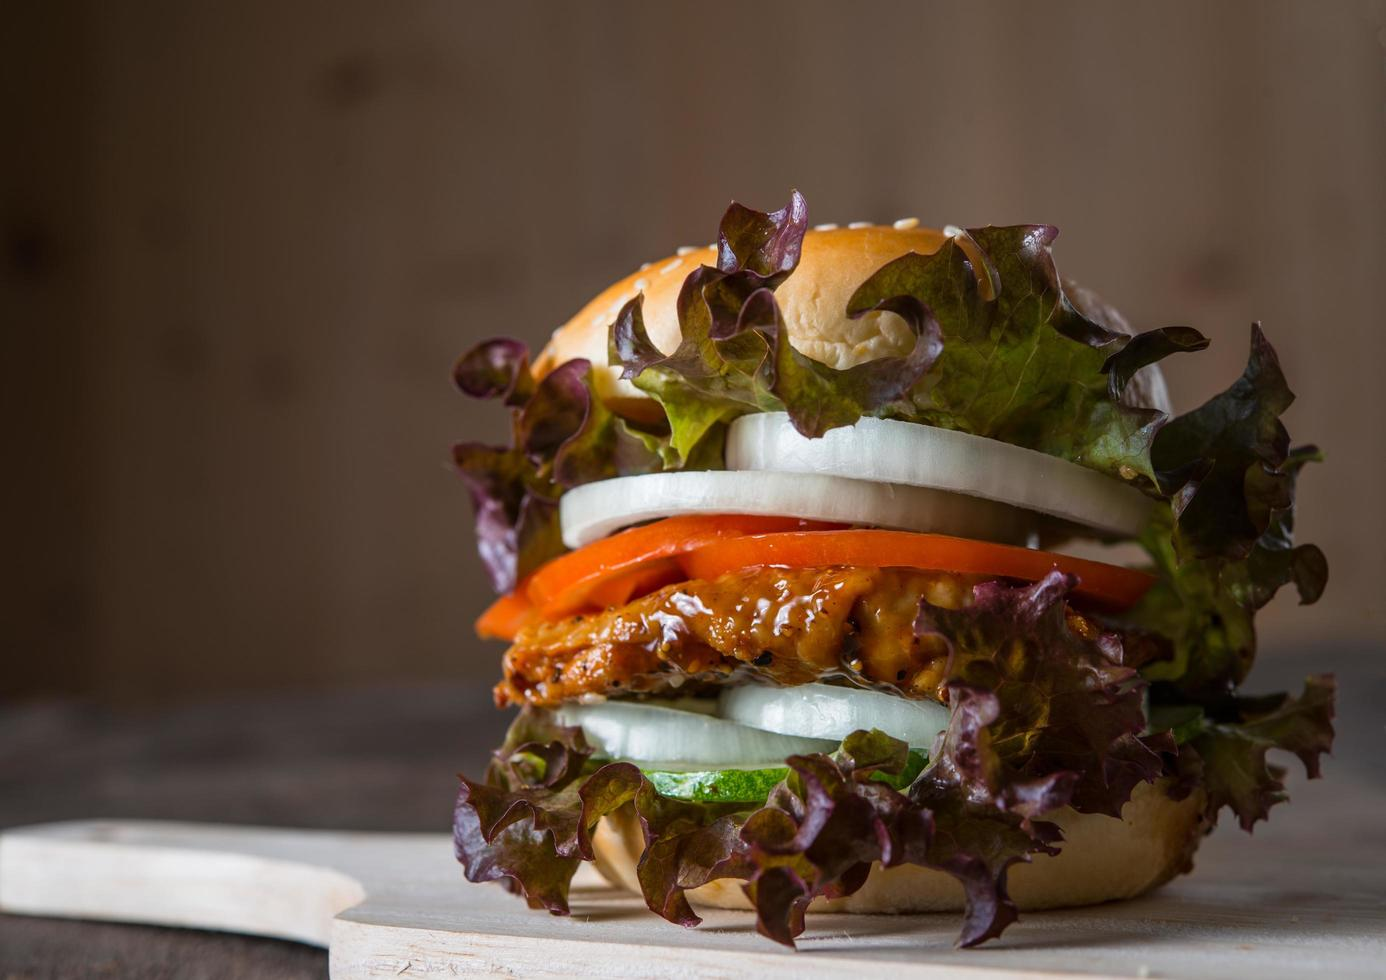 Homemade chicken burger with lettuce, tomato and onion photo